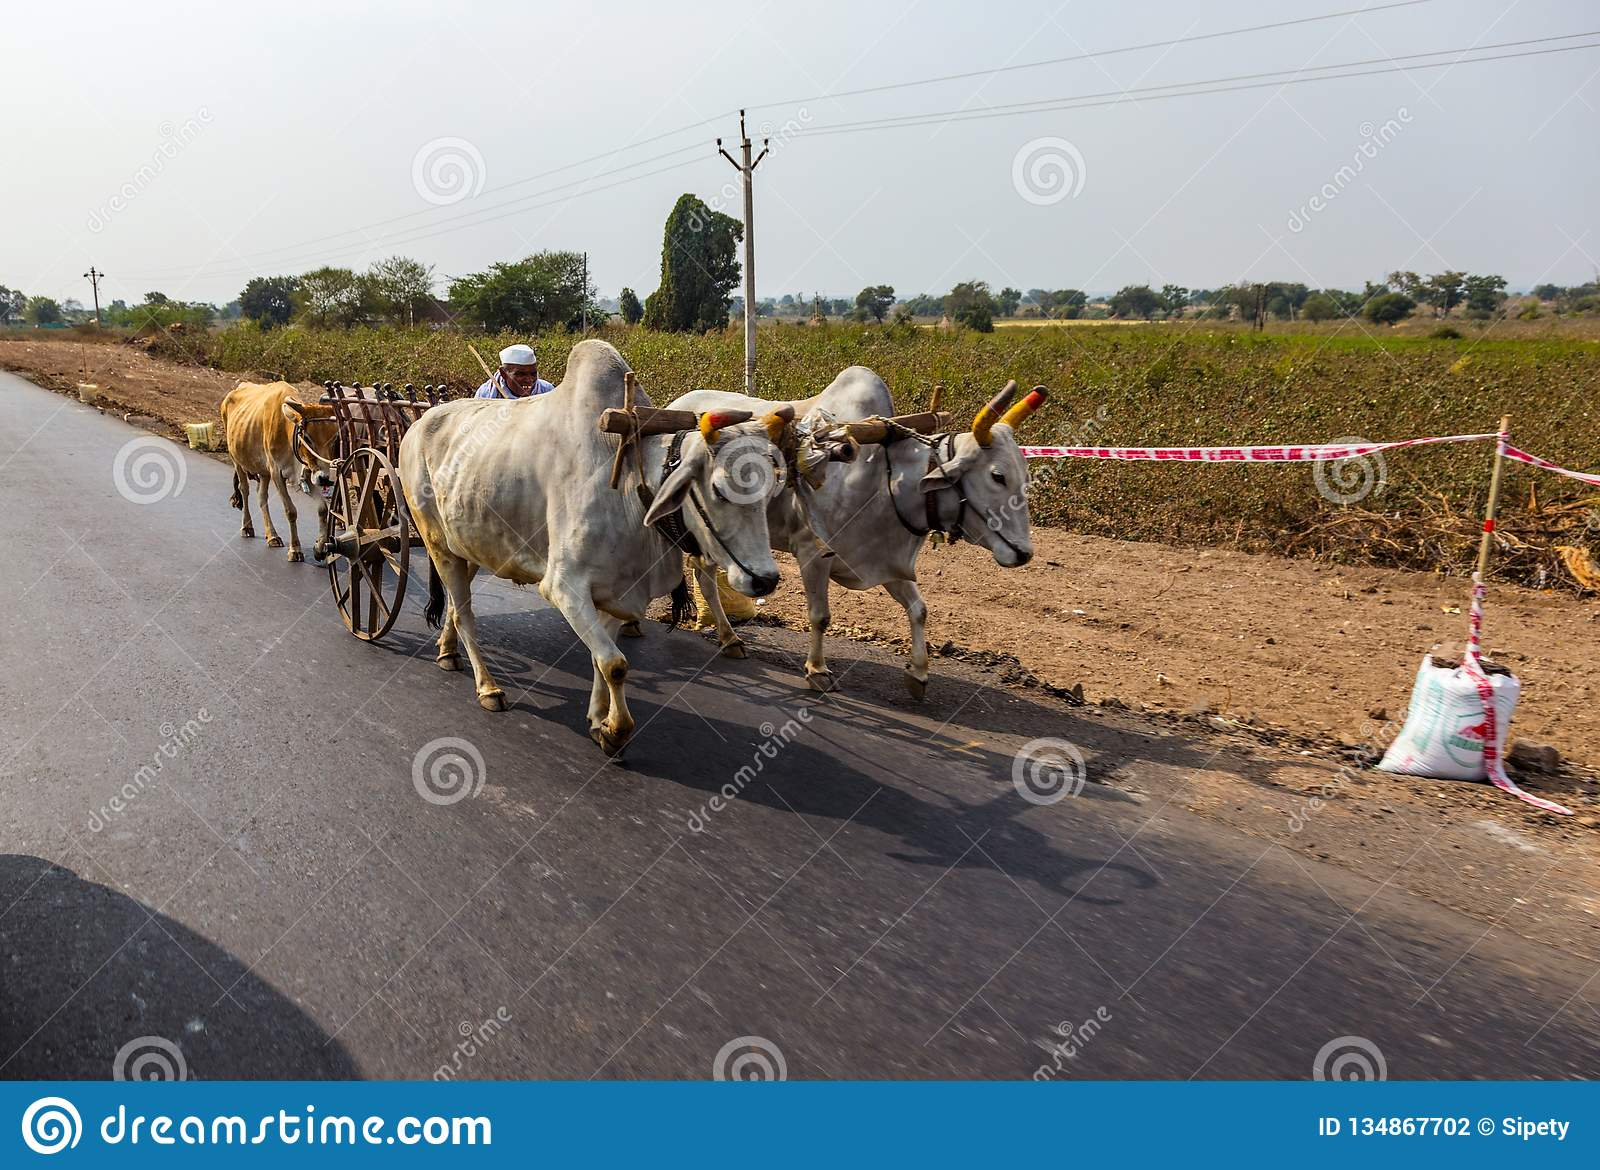 AURANGABAD, INDIA - JANUARY 14, 2018: A traditional Indian man drive on a cart drawn by two white bulls